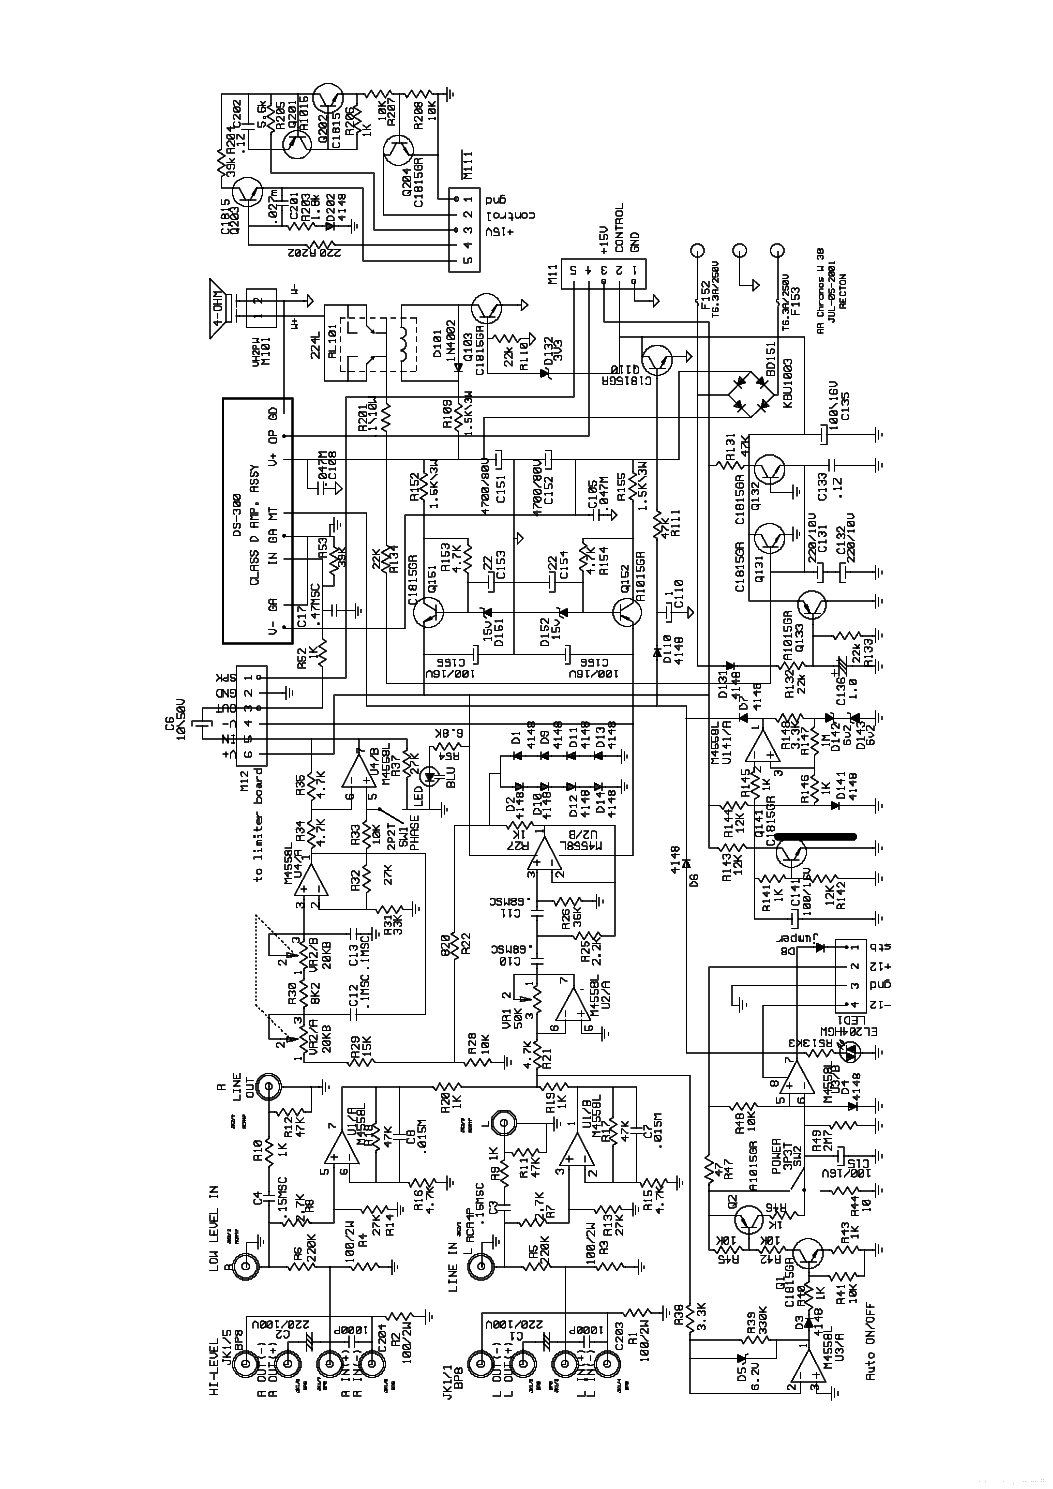 ACOUSTIC-RESEARCH CHRONOS W38 SCH LAYOUT Service Manual